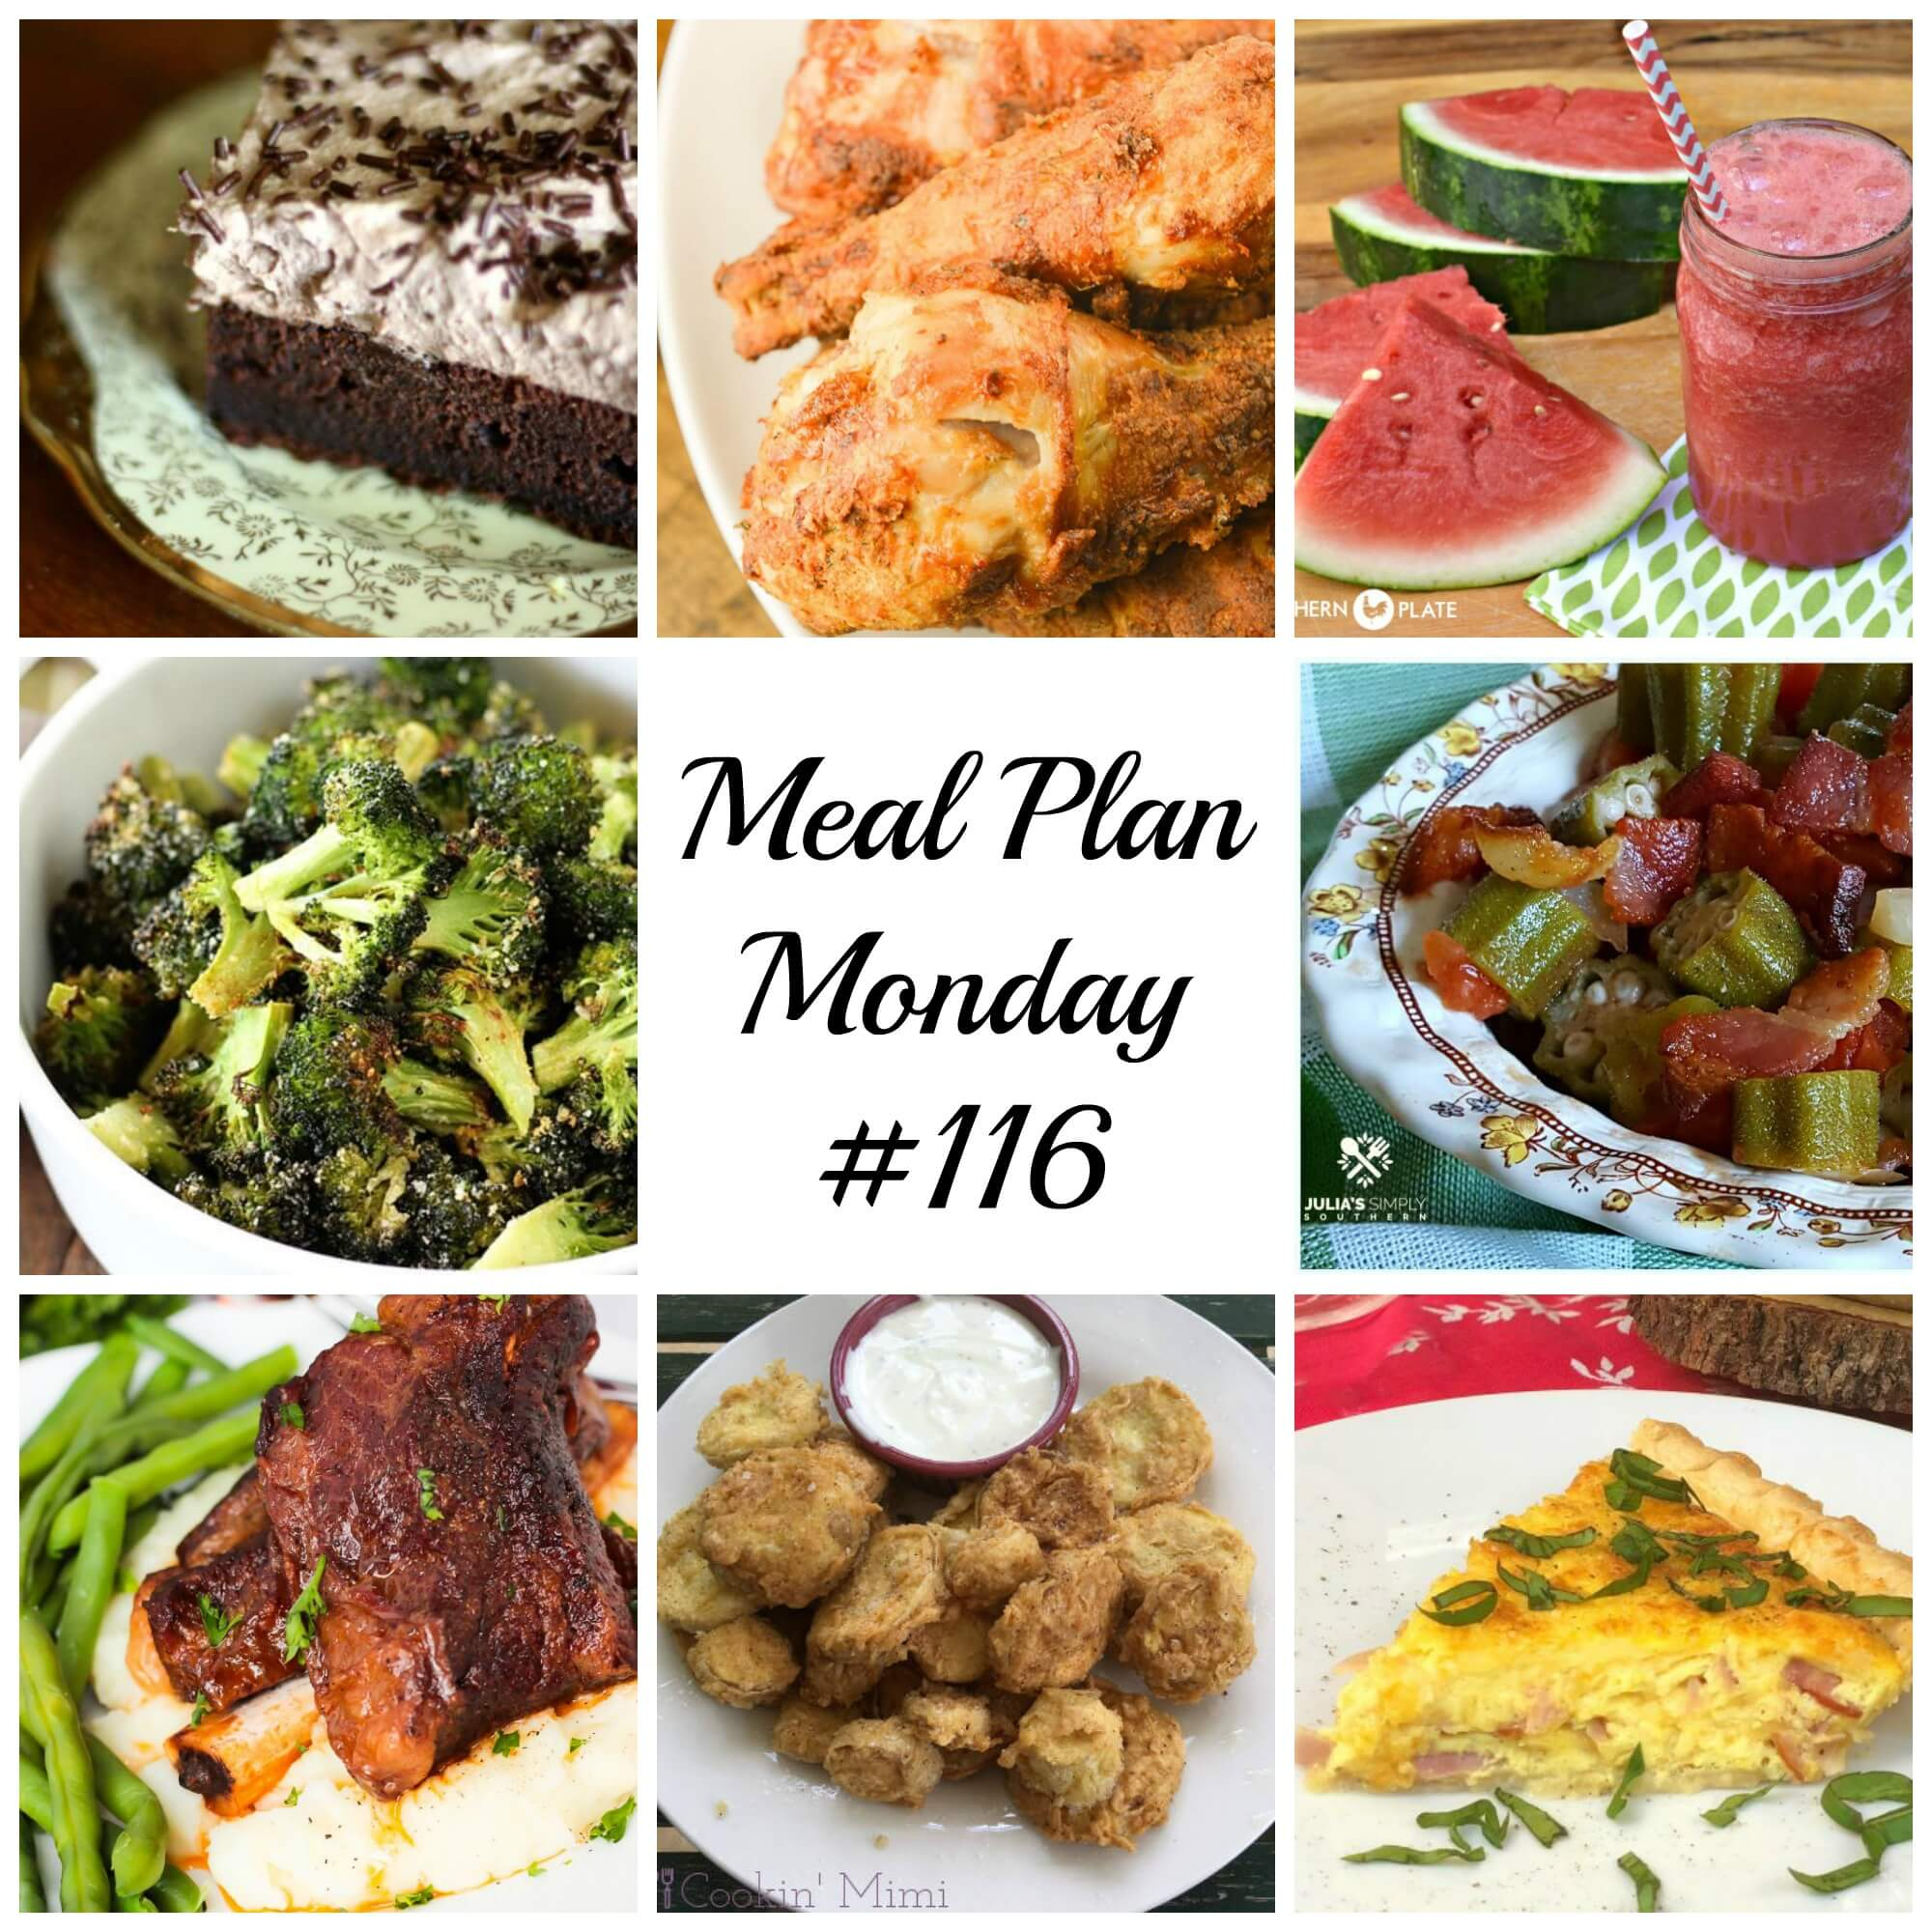 Meal Plan Monday 116 - FREE Meal Planning Recipes Featuring Chocolate Cake, Air Fryer Chicken, okra and tomatoes and fried squash